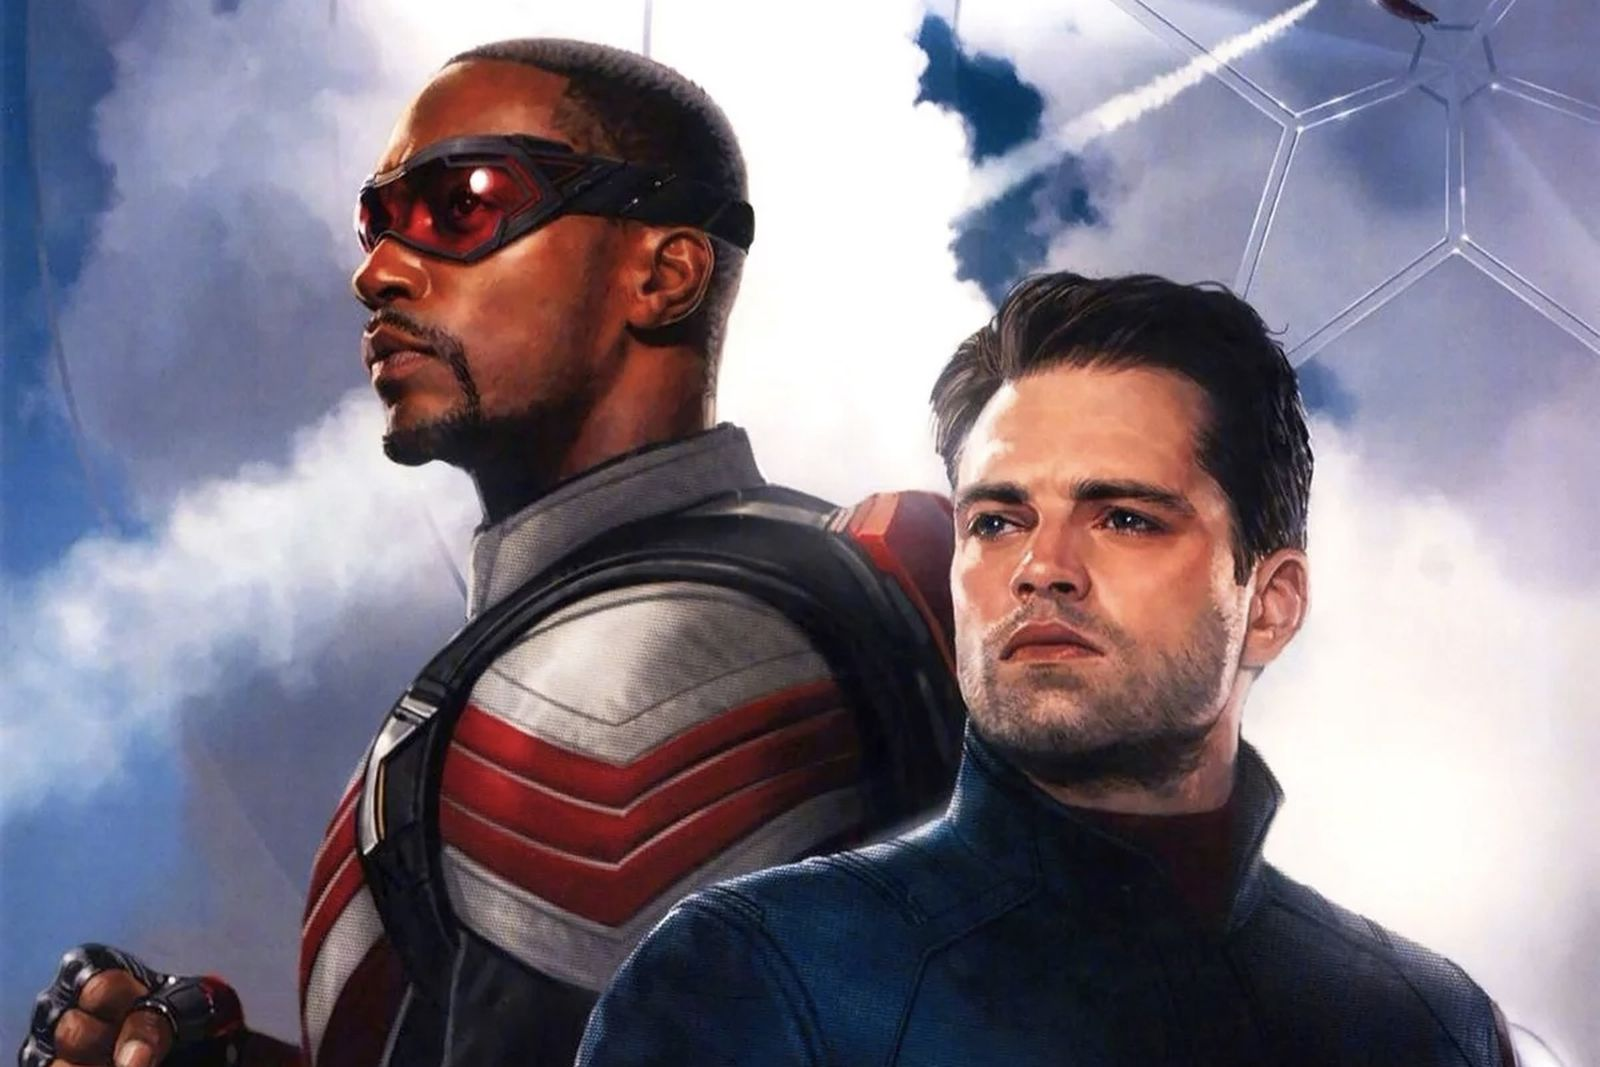 the-falcon-and-the-winter-soldier-set-pictures-leak-01